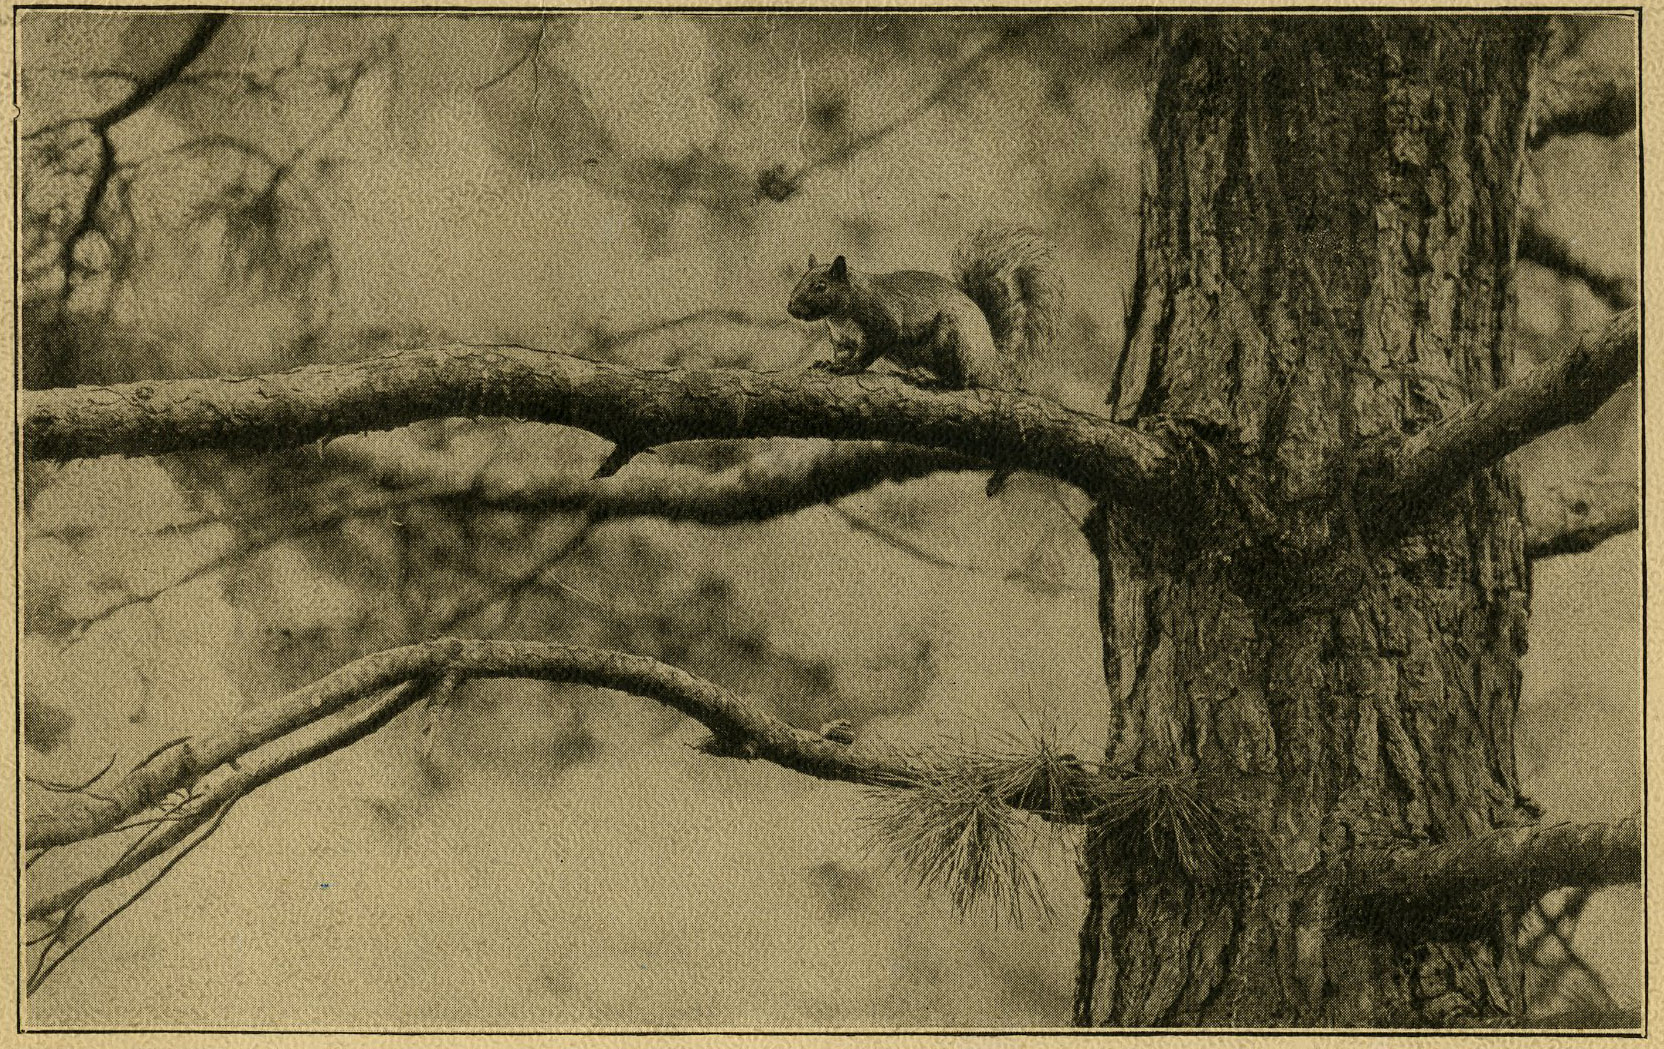 Squirrel in tree, circa 1912